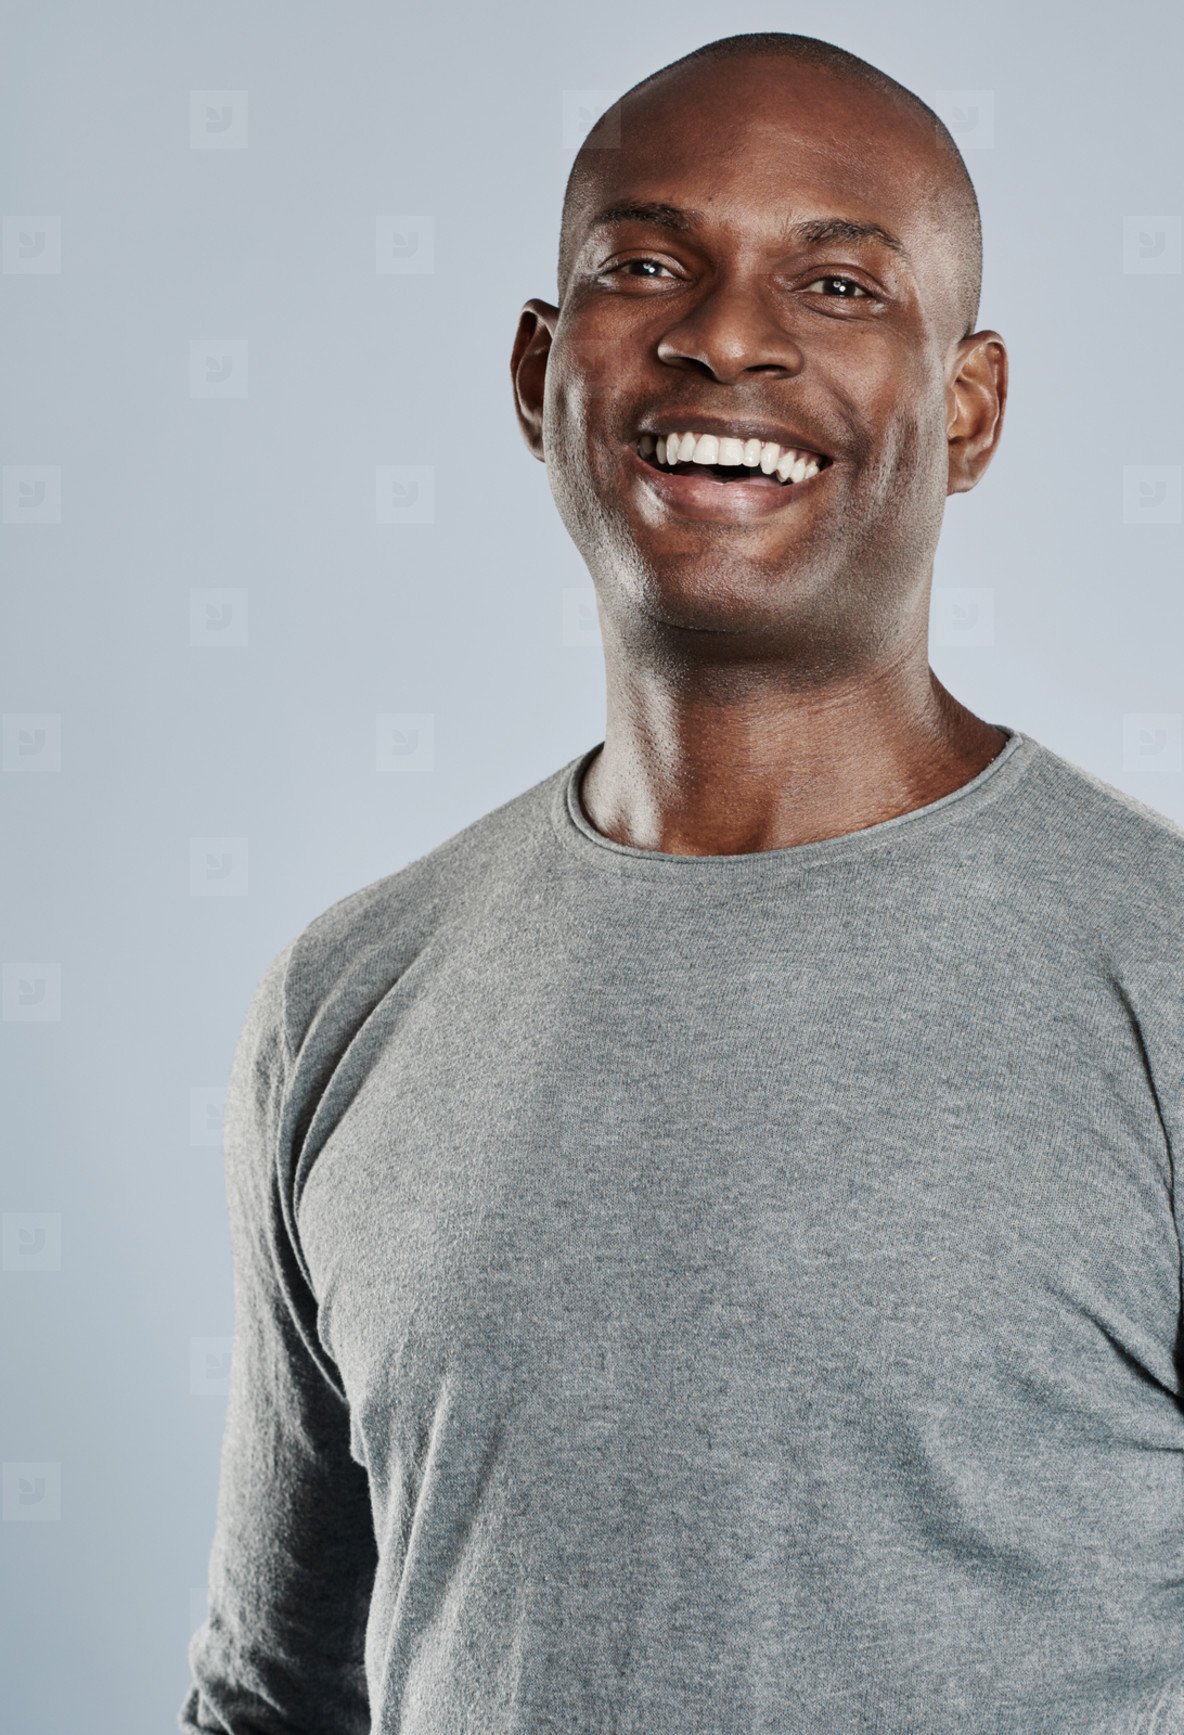 Happy man in gray shirt laughing